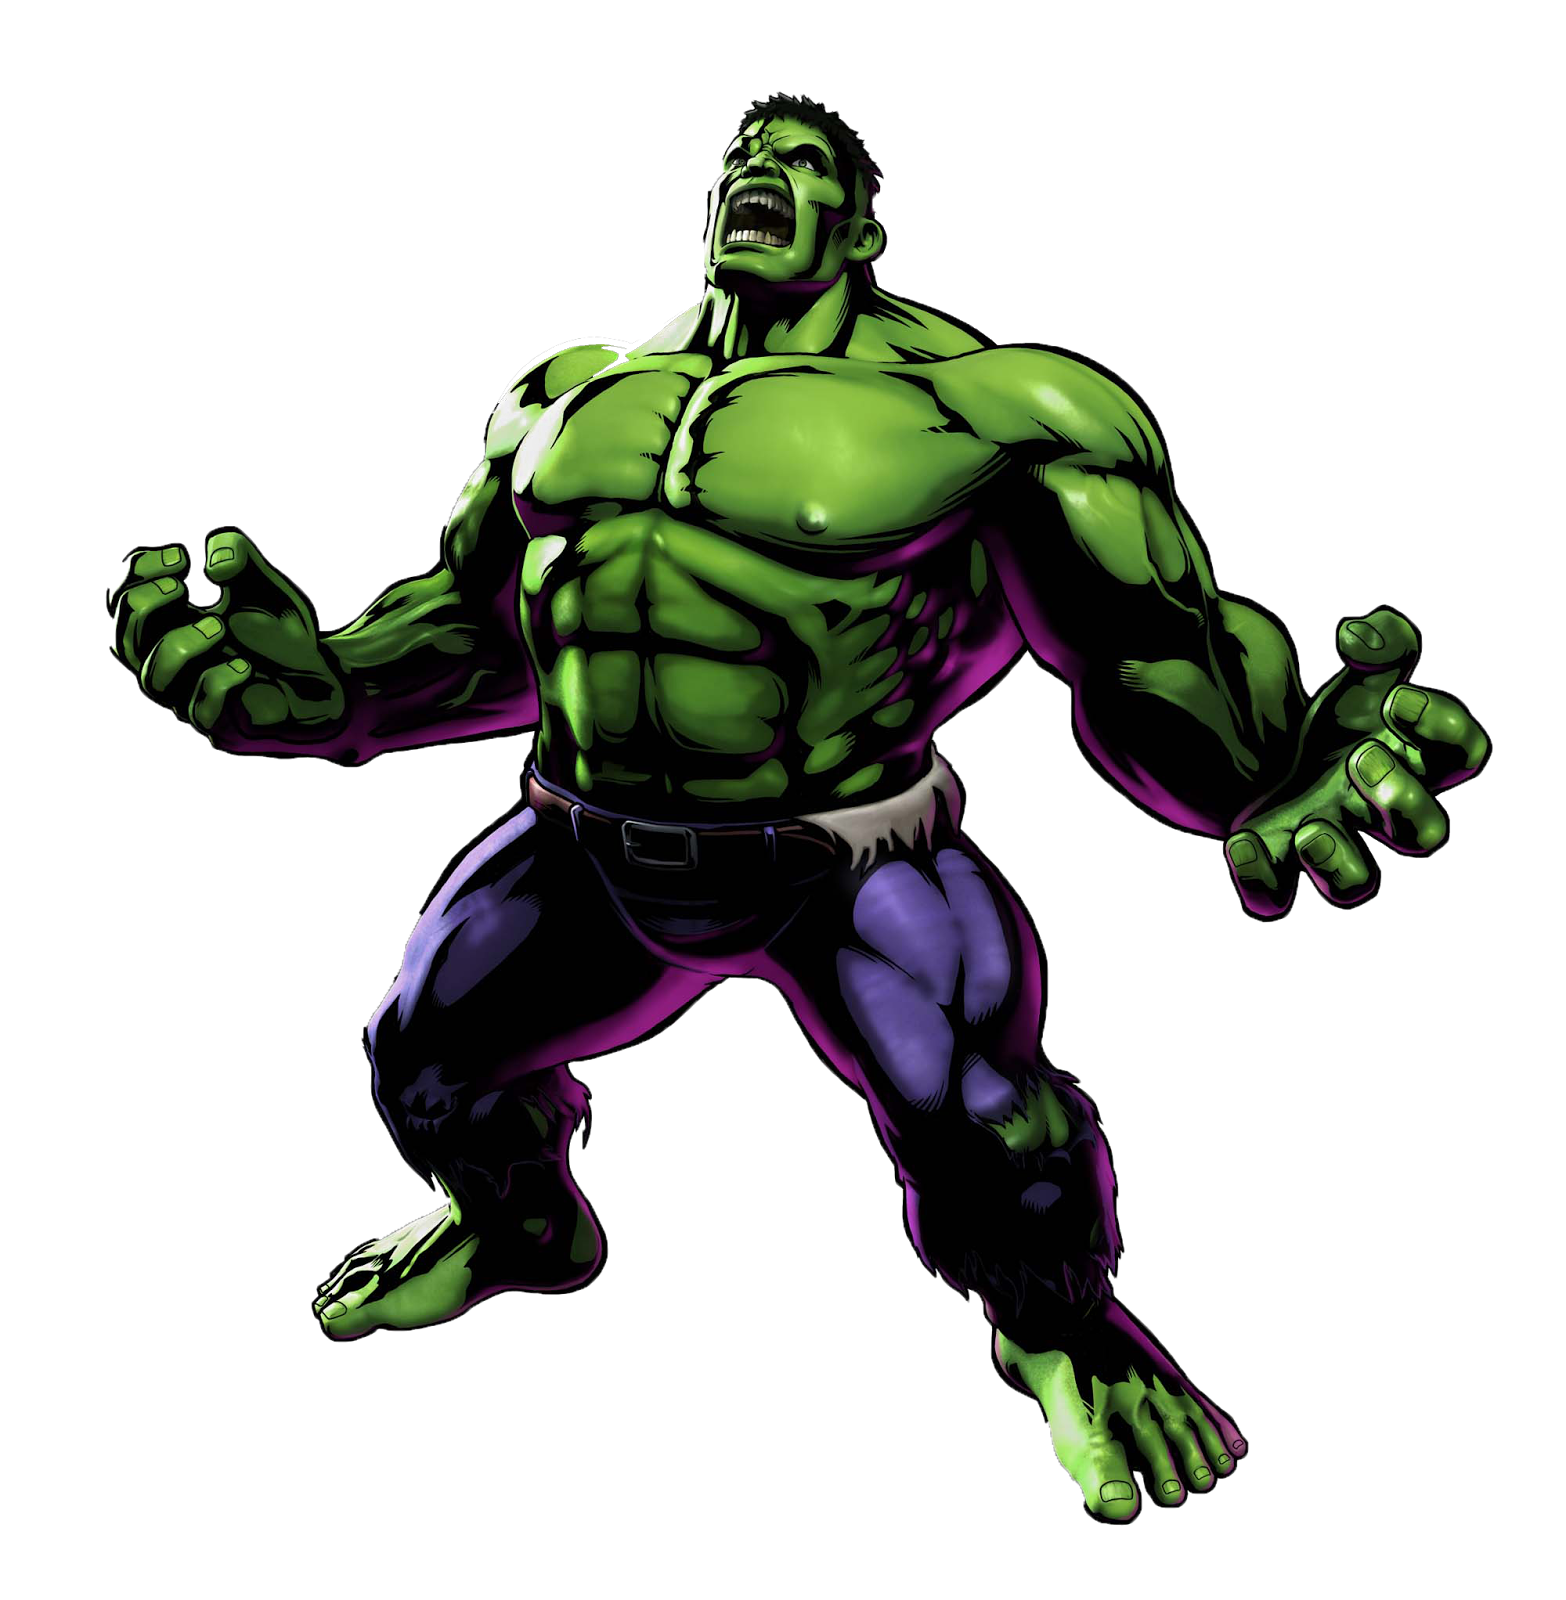 banner royalty free library Clip art wesomeness hero. Hulk clipart